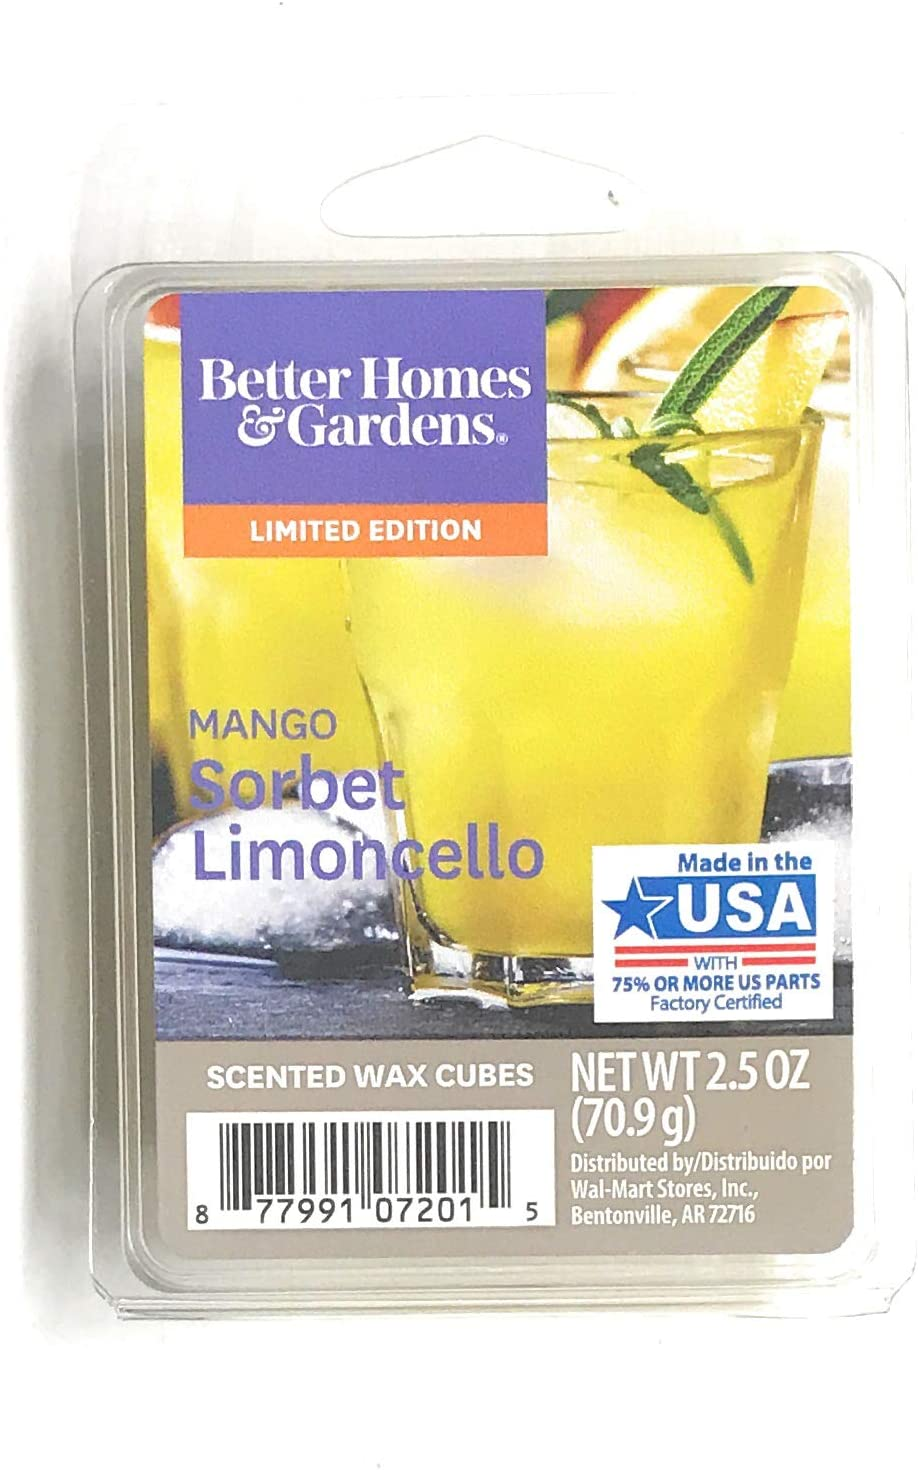 Better Homes and Gardens Mango Sorbet Limoncello 2018 Limited Edition Wax Cubes